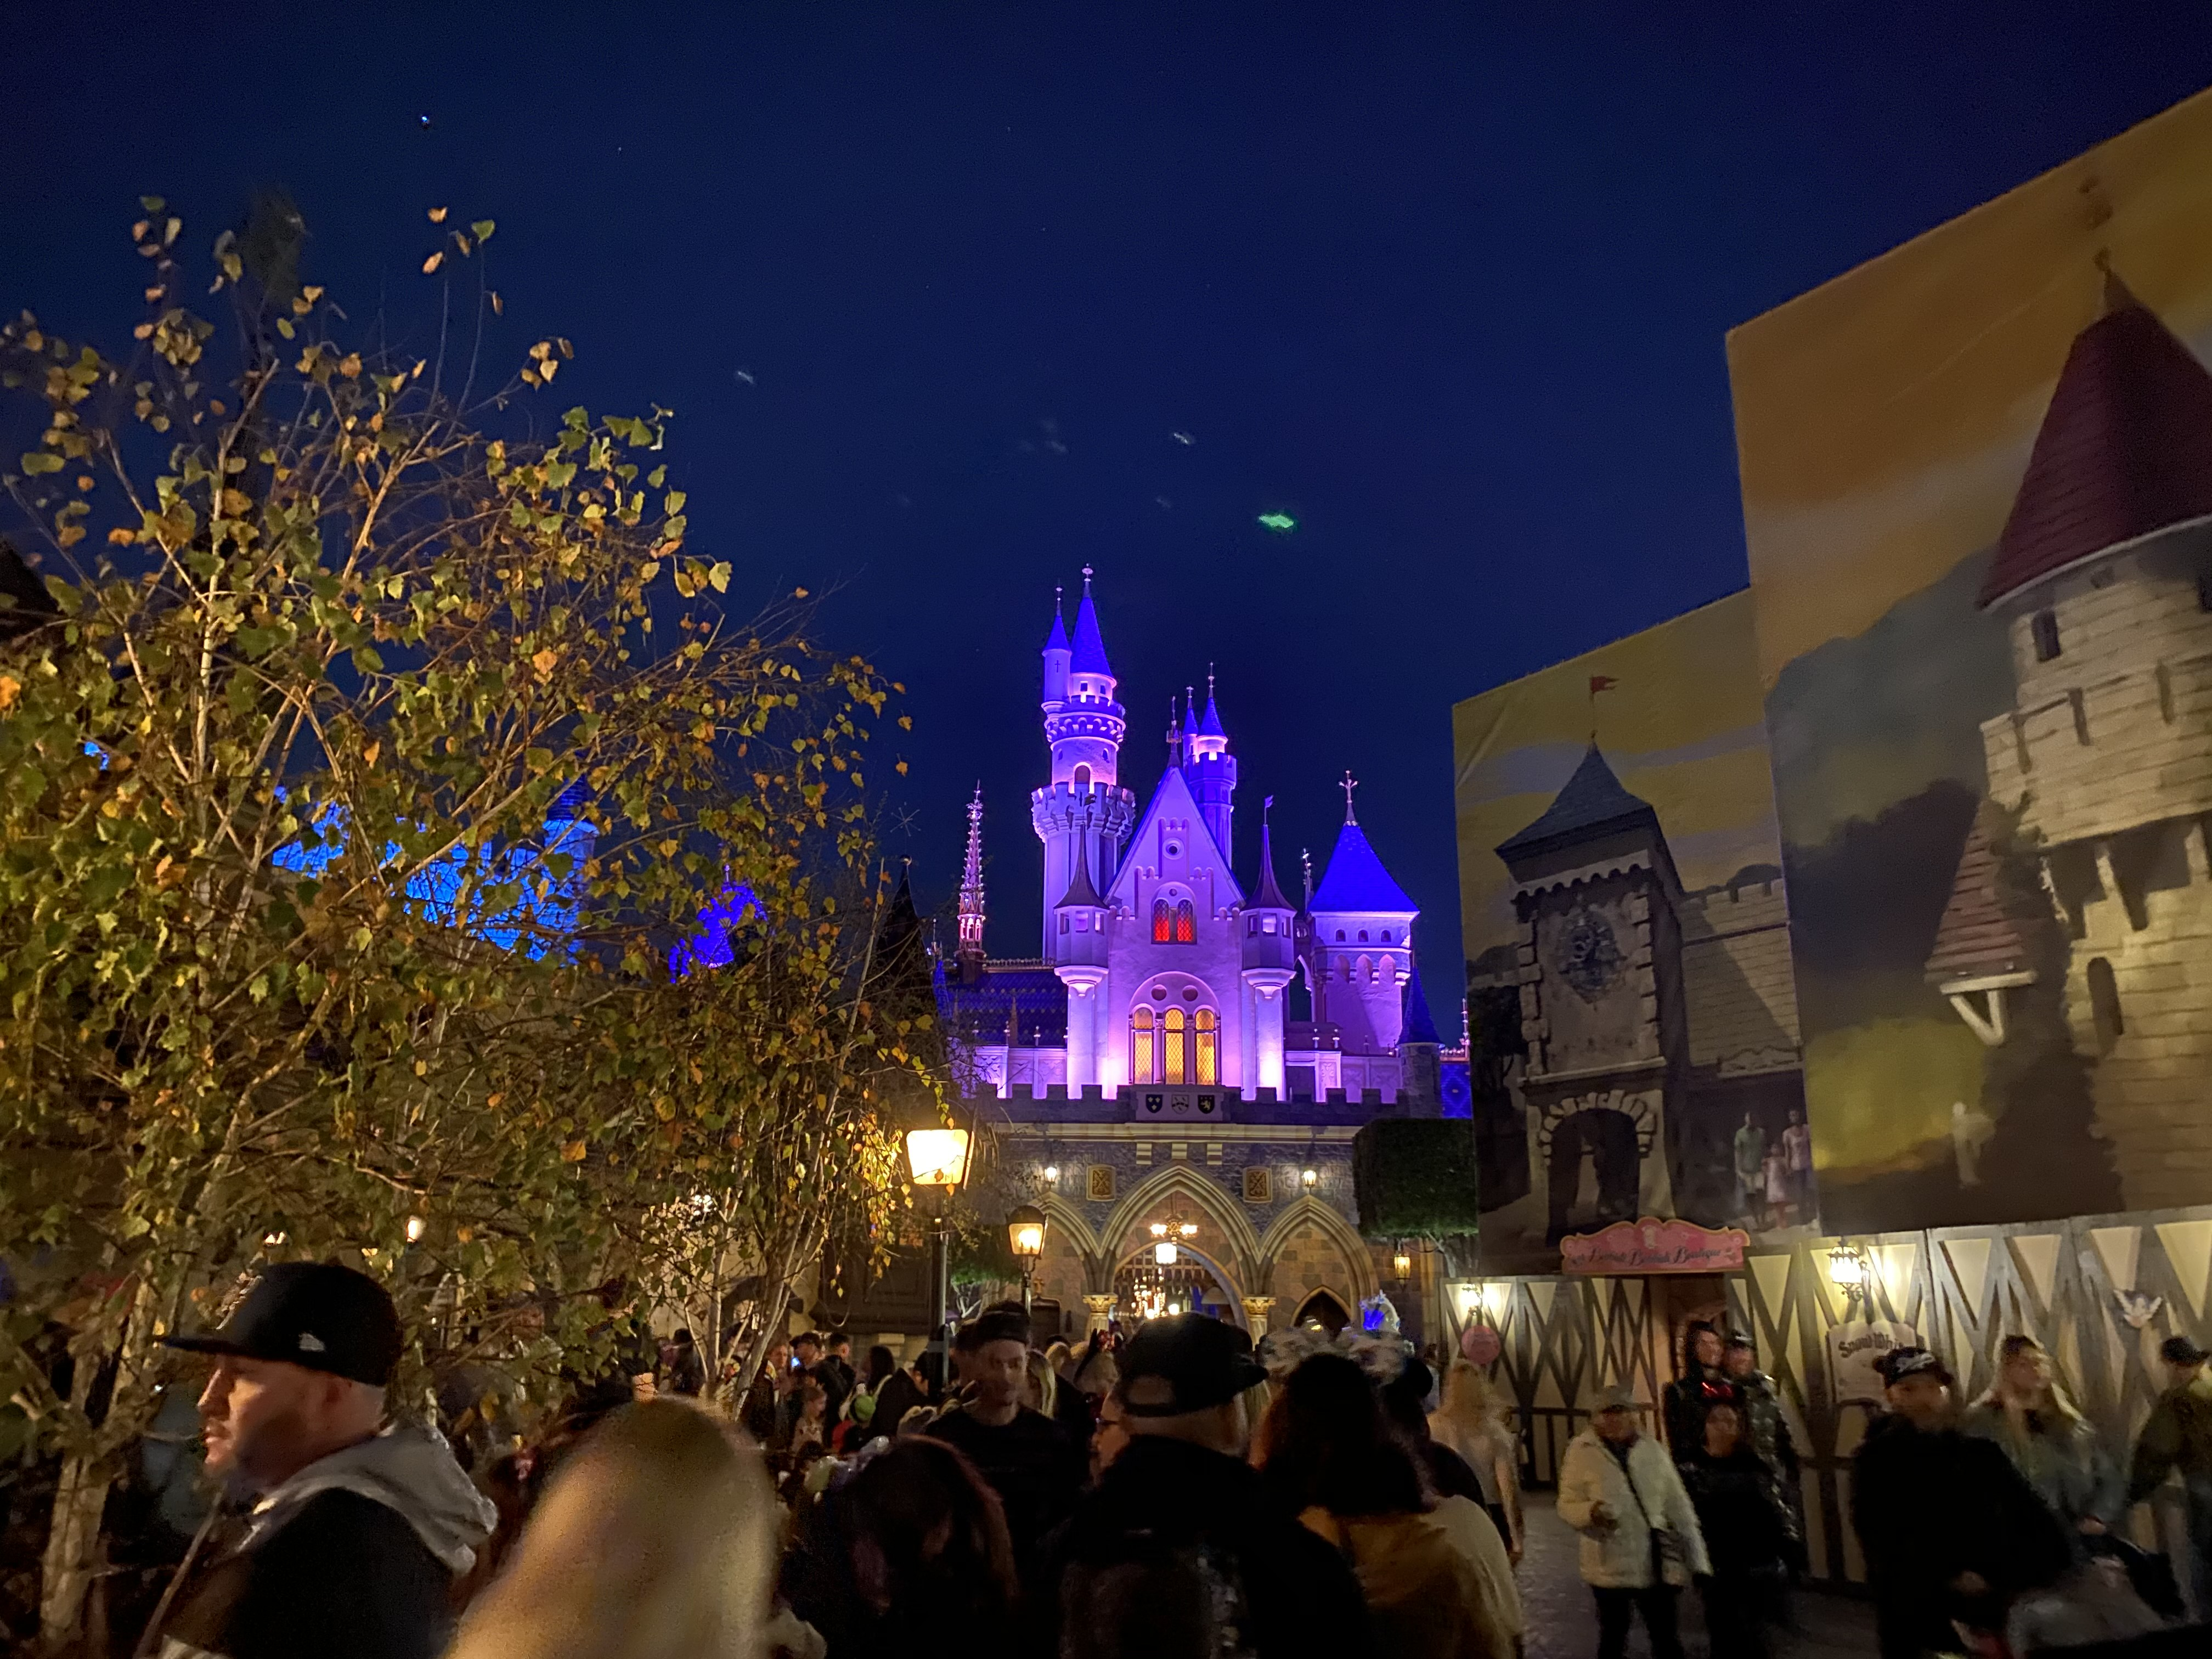 I decided to experience plenty of rides for my first visit to Disneyland. I wanted to maximize my experience as much as I could so I sampled a slew of rides to see which ones stood out.